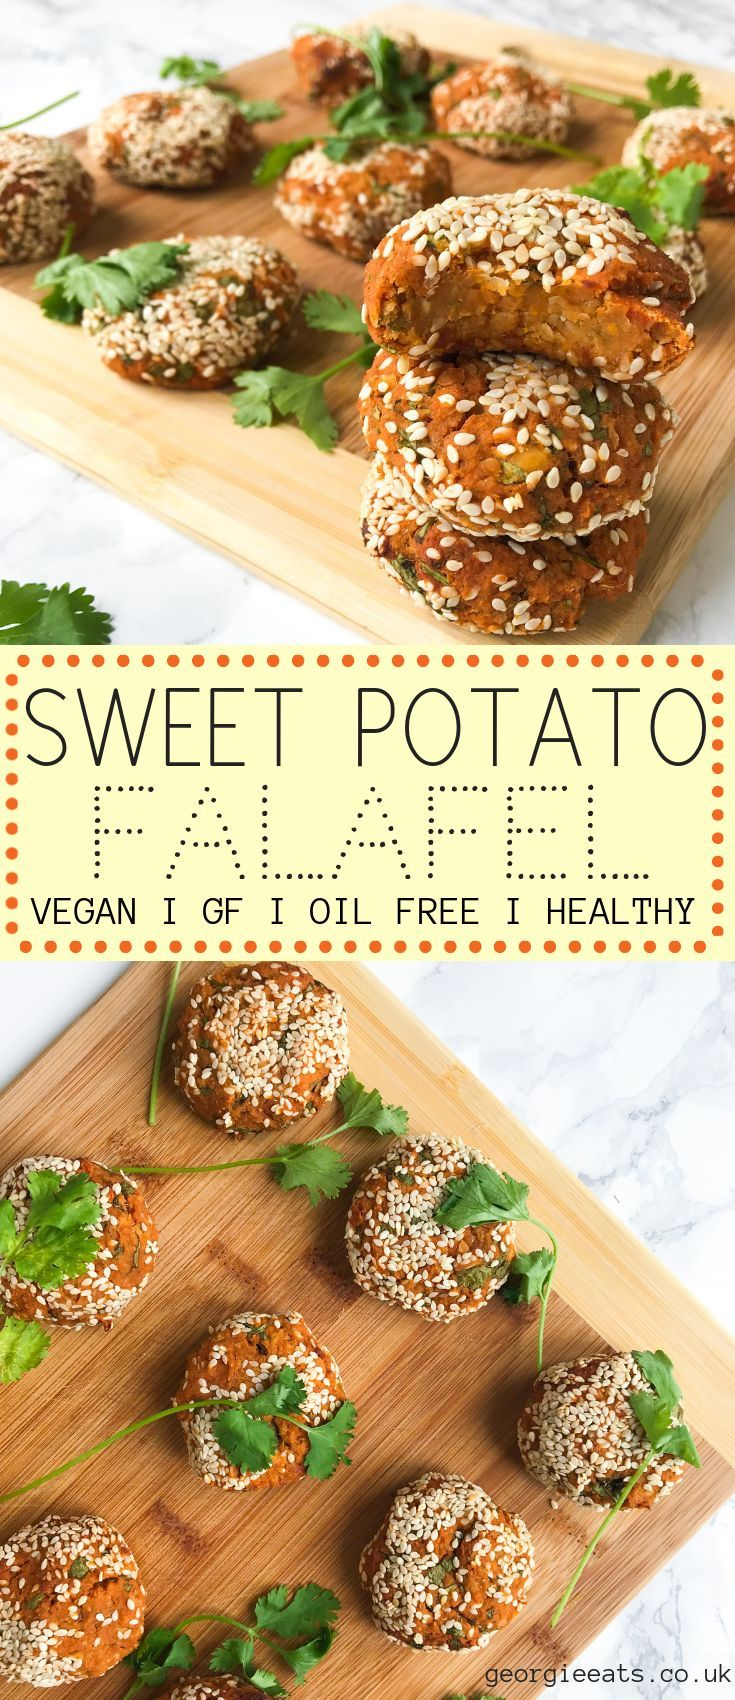 Perfectly spiced and absolutely delicious! These falafels are baked and not frie…